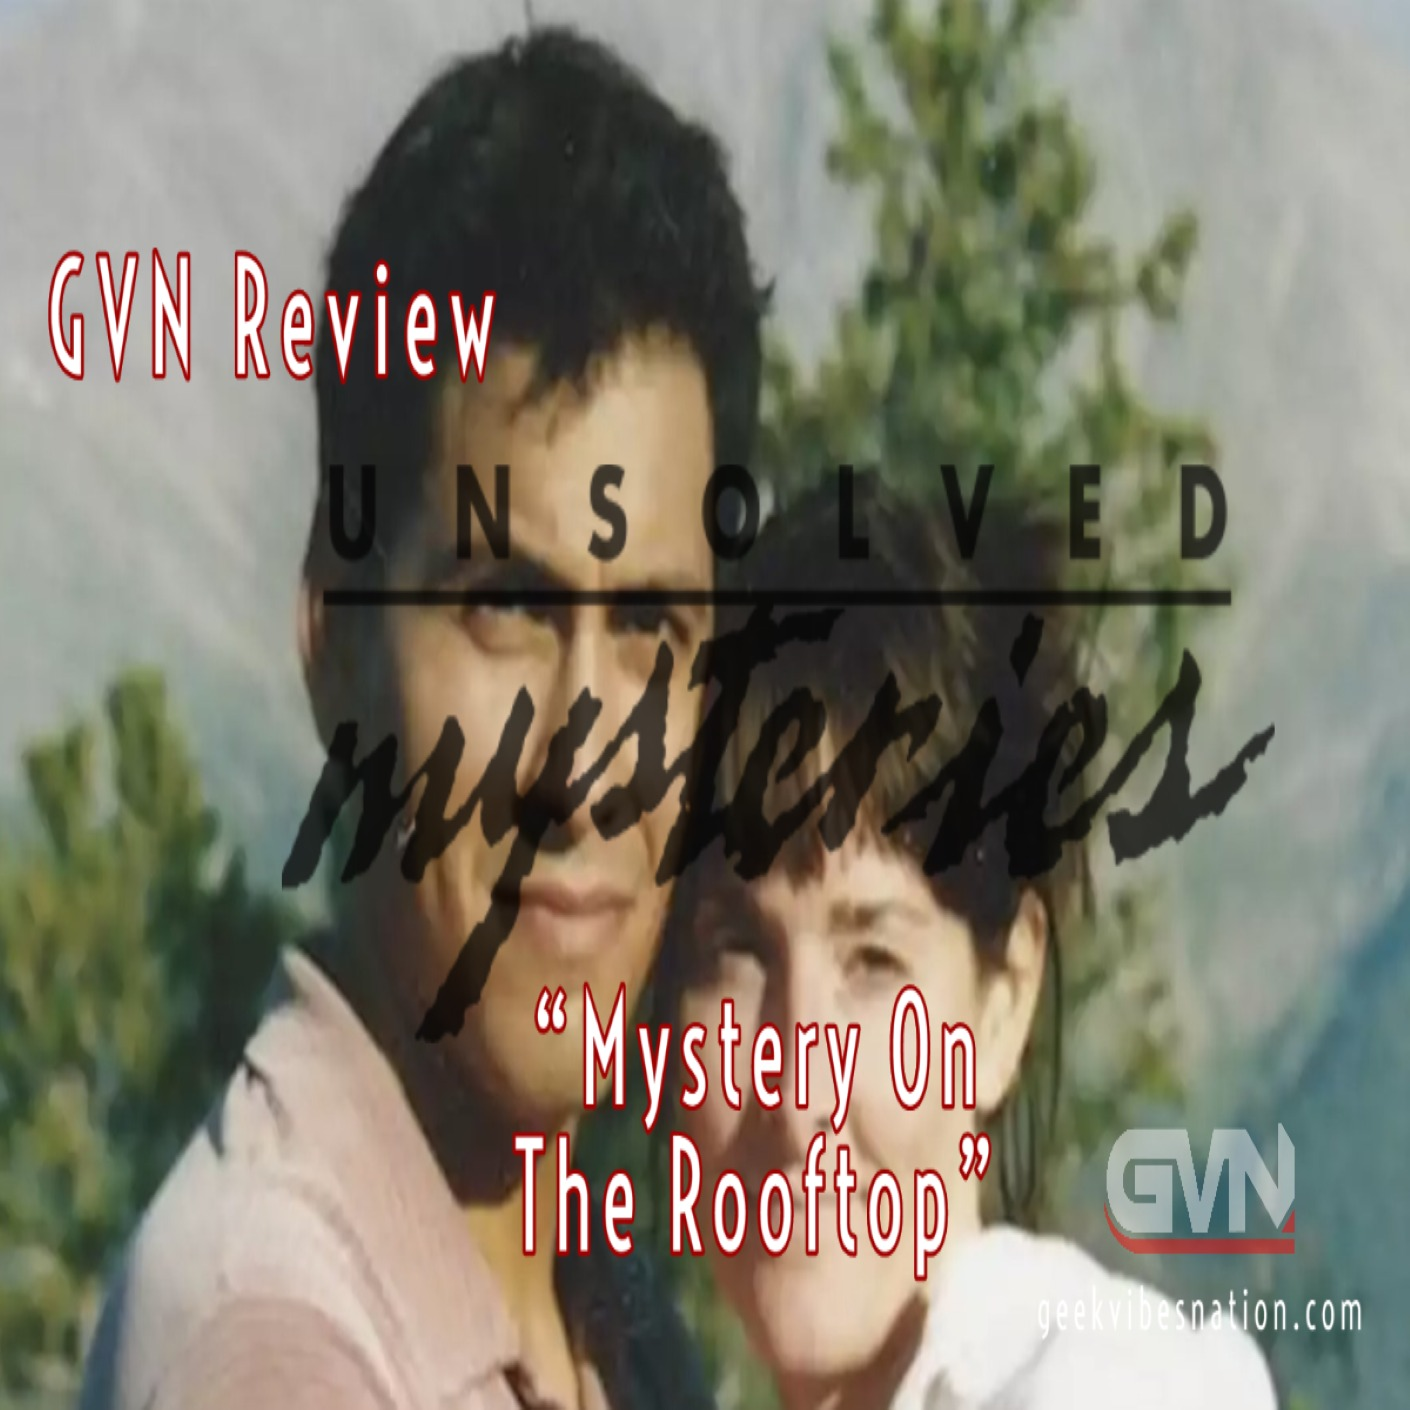 GVN Review: Unsolved Mysteries - Mystery on the Rooftop